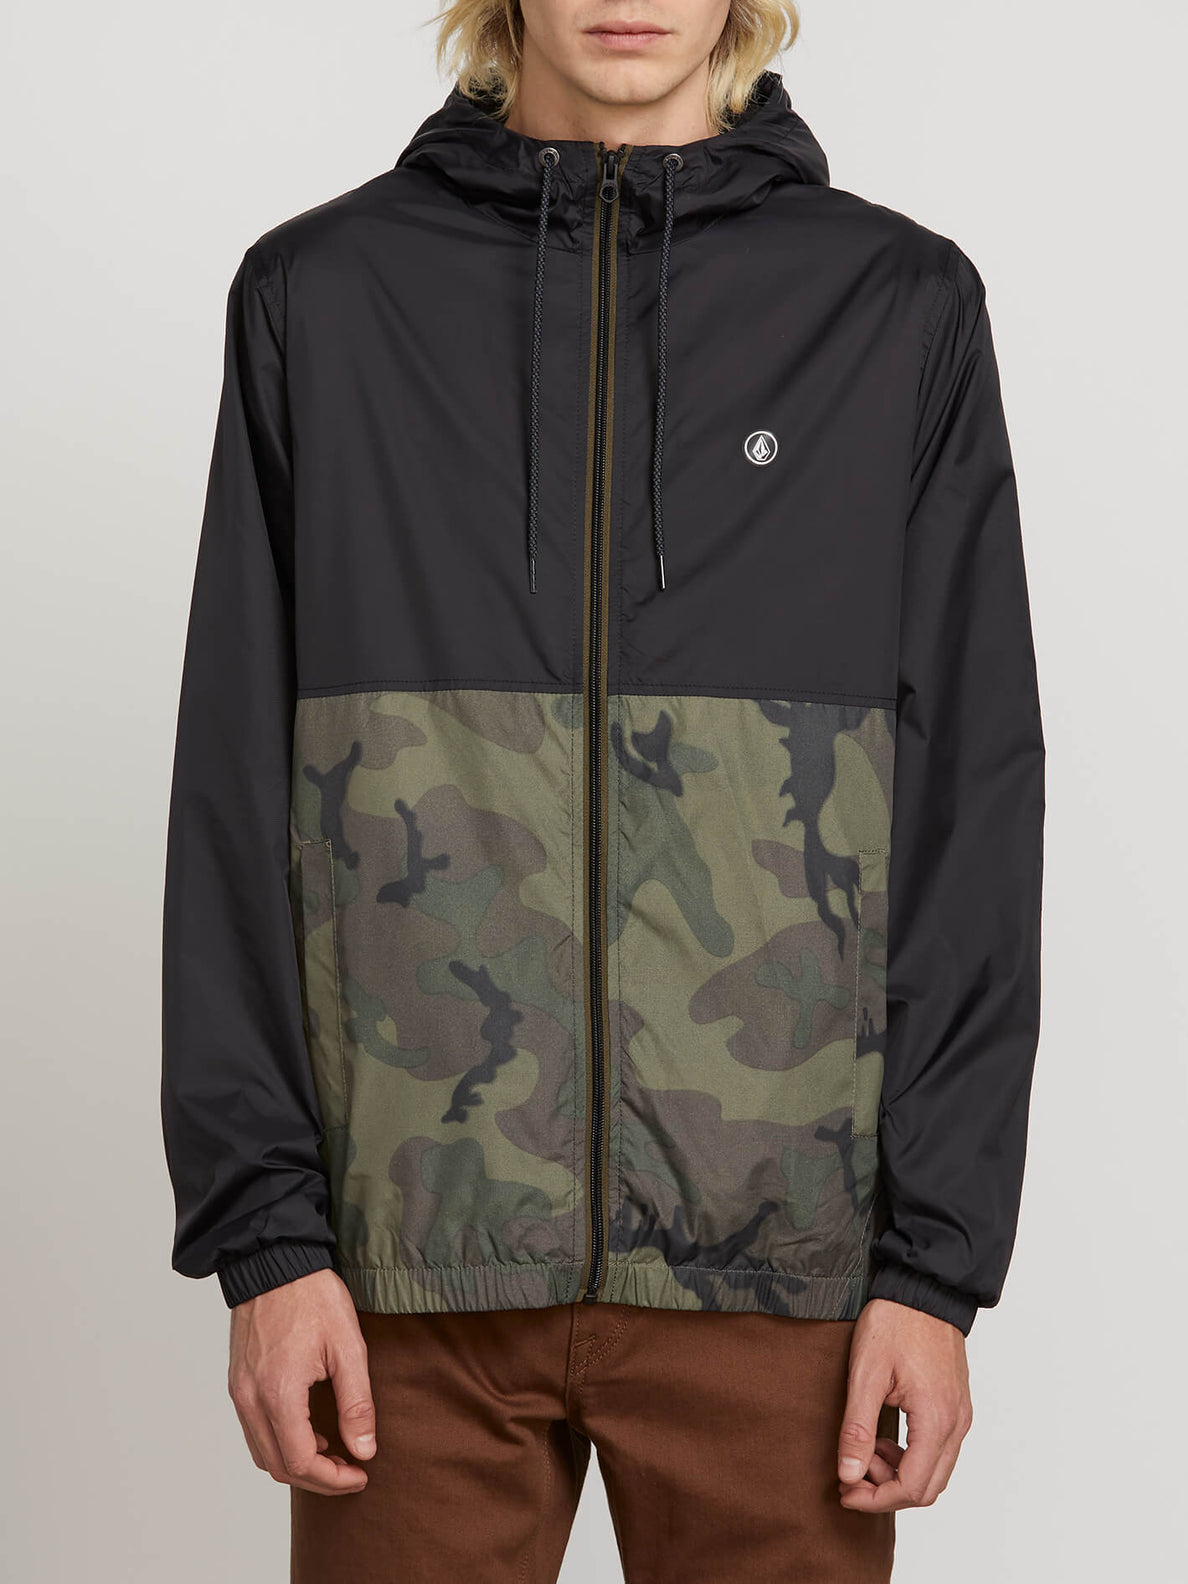 Ermont Jacket In Camouflage, Front View